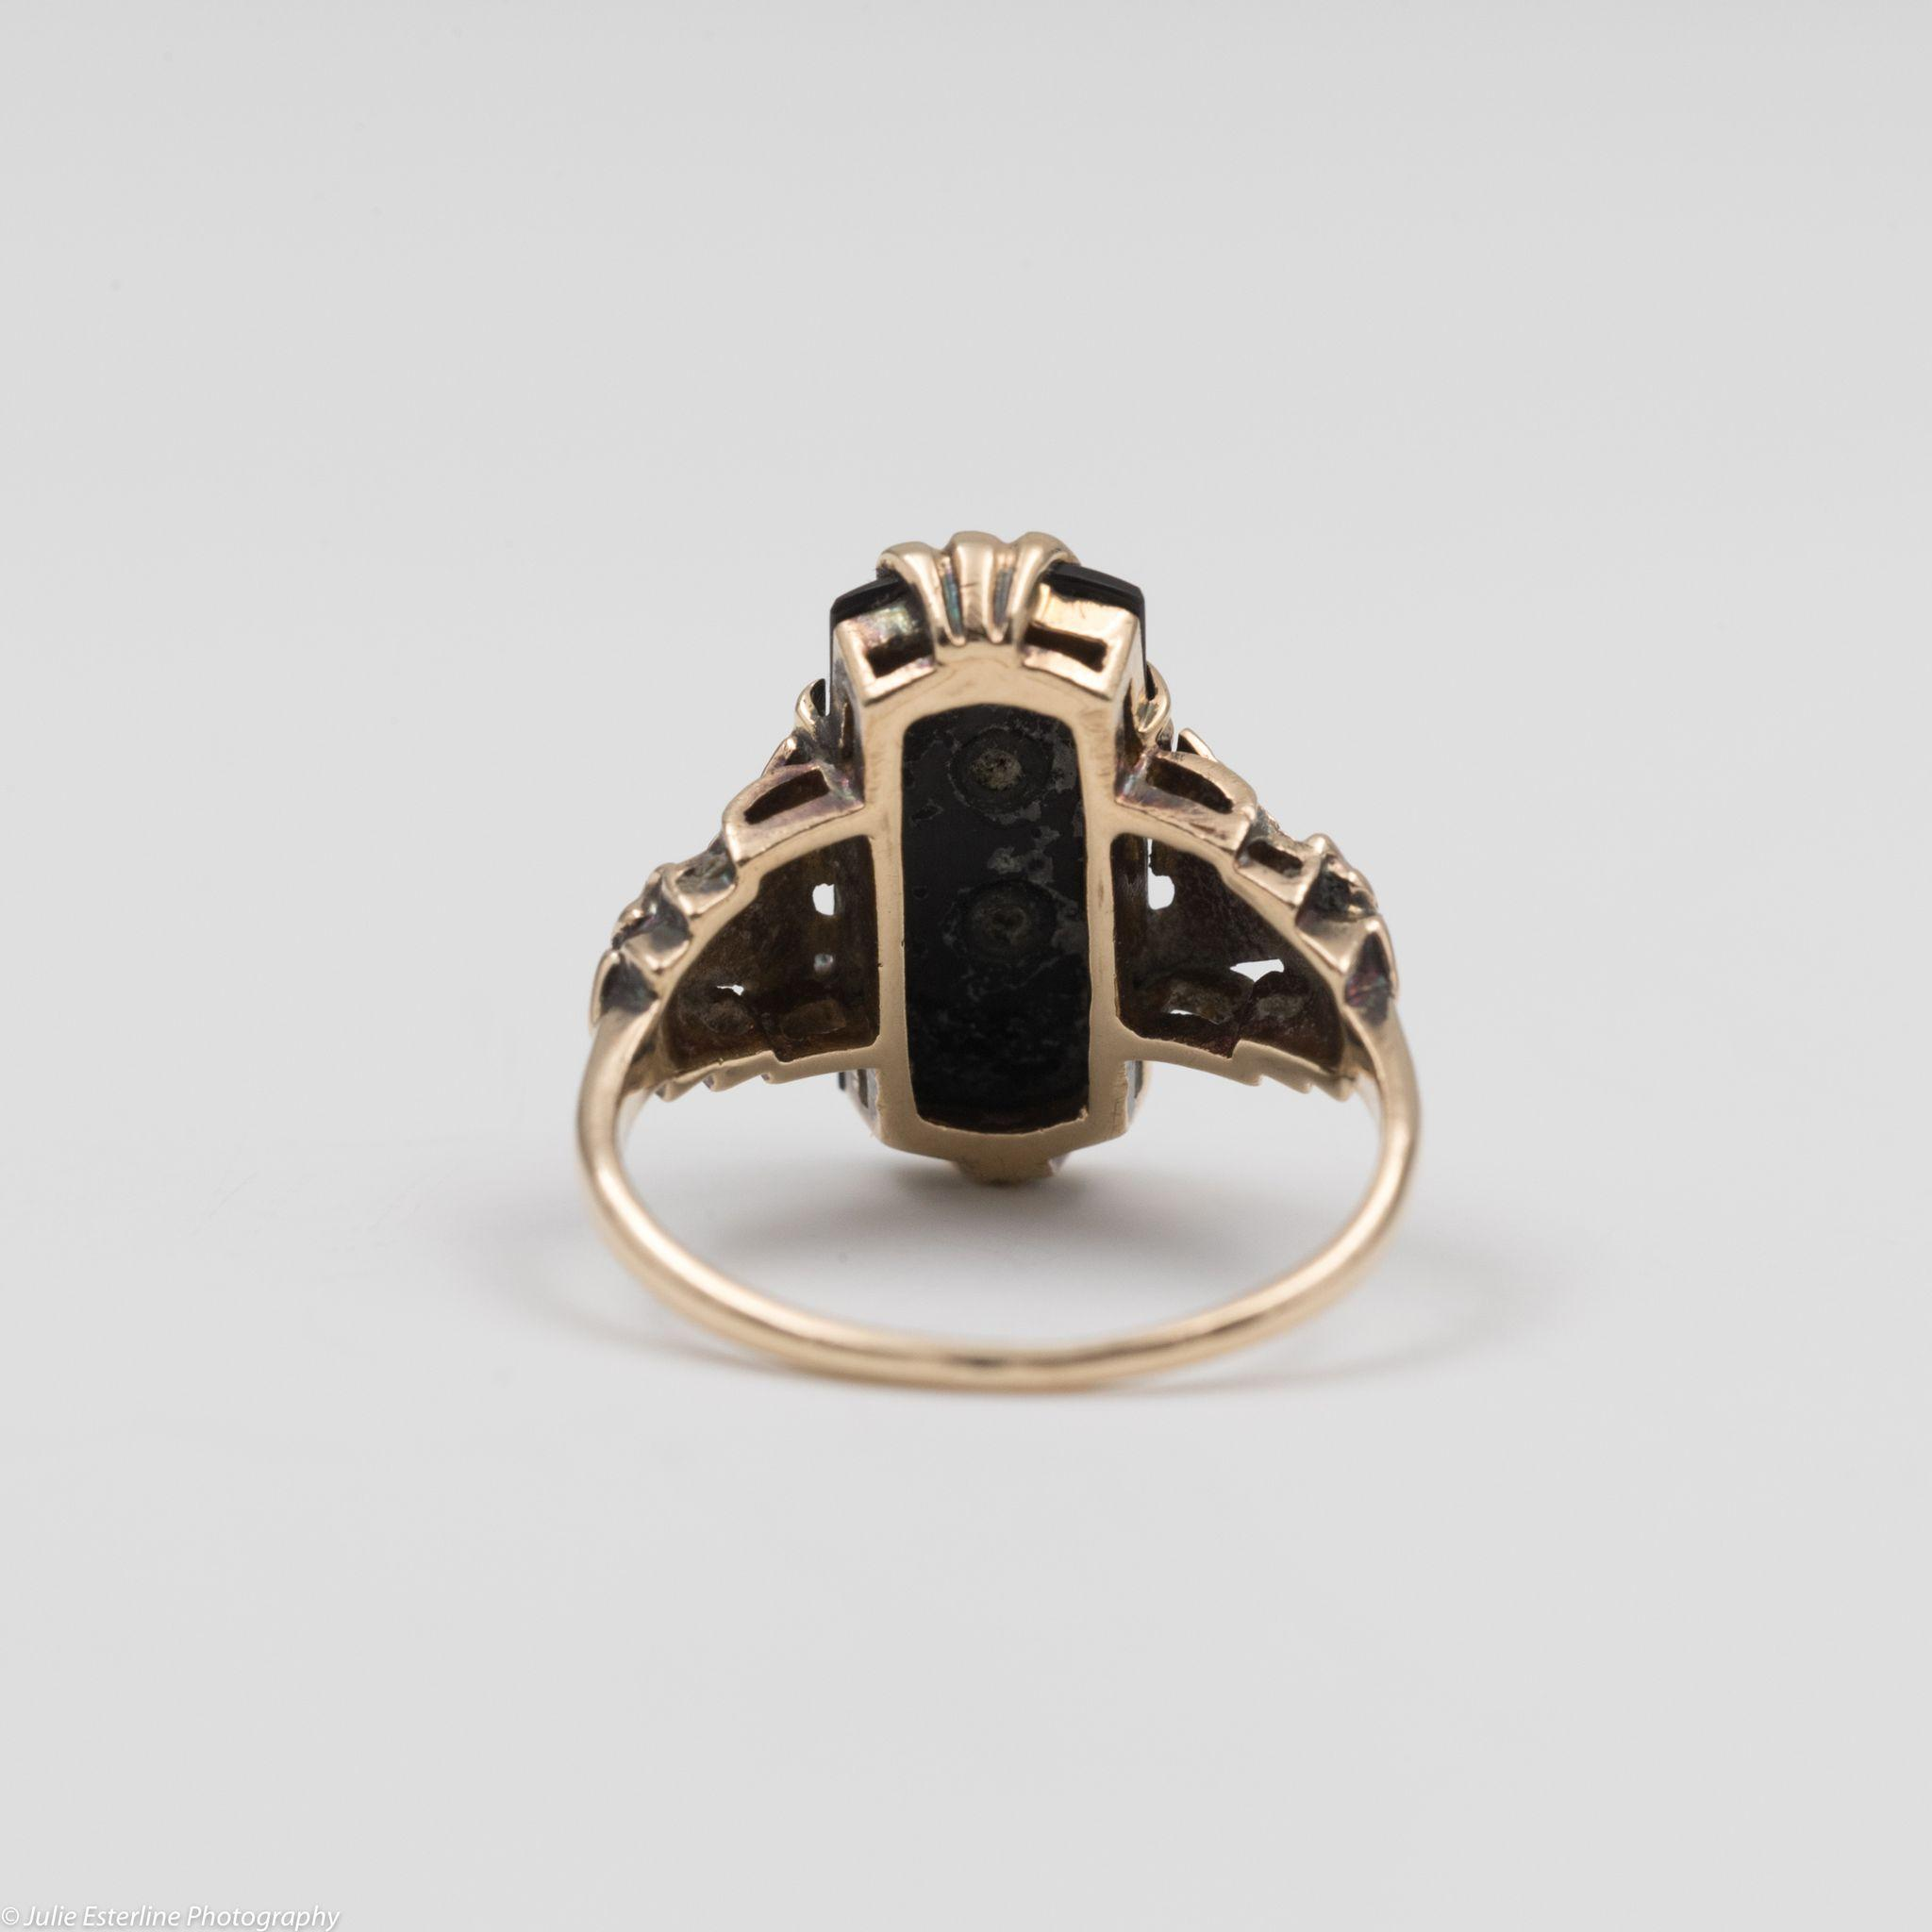 monogram inspirational onyx market rings h diamond the s fresh jewelers of wedding ring yx and choice engagement unconventional men enamel square black